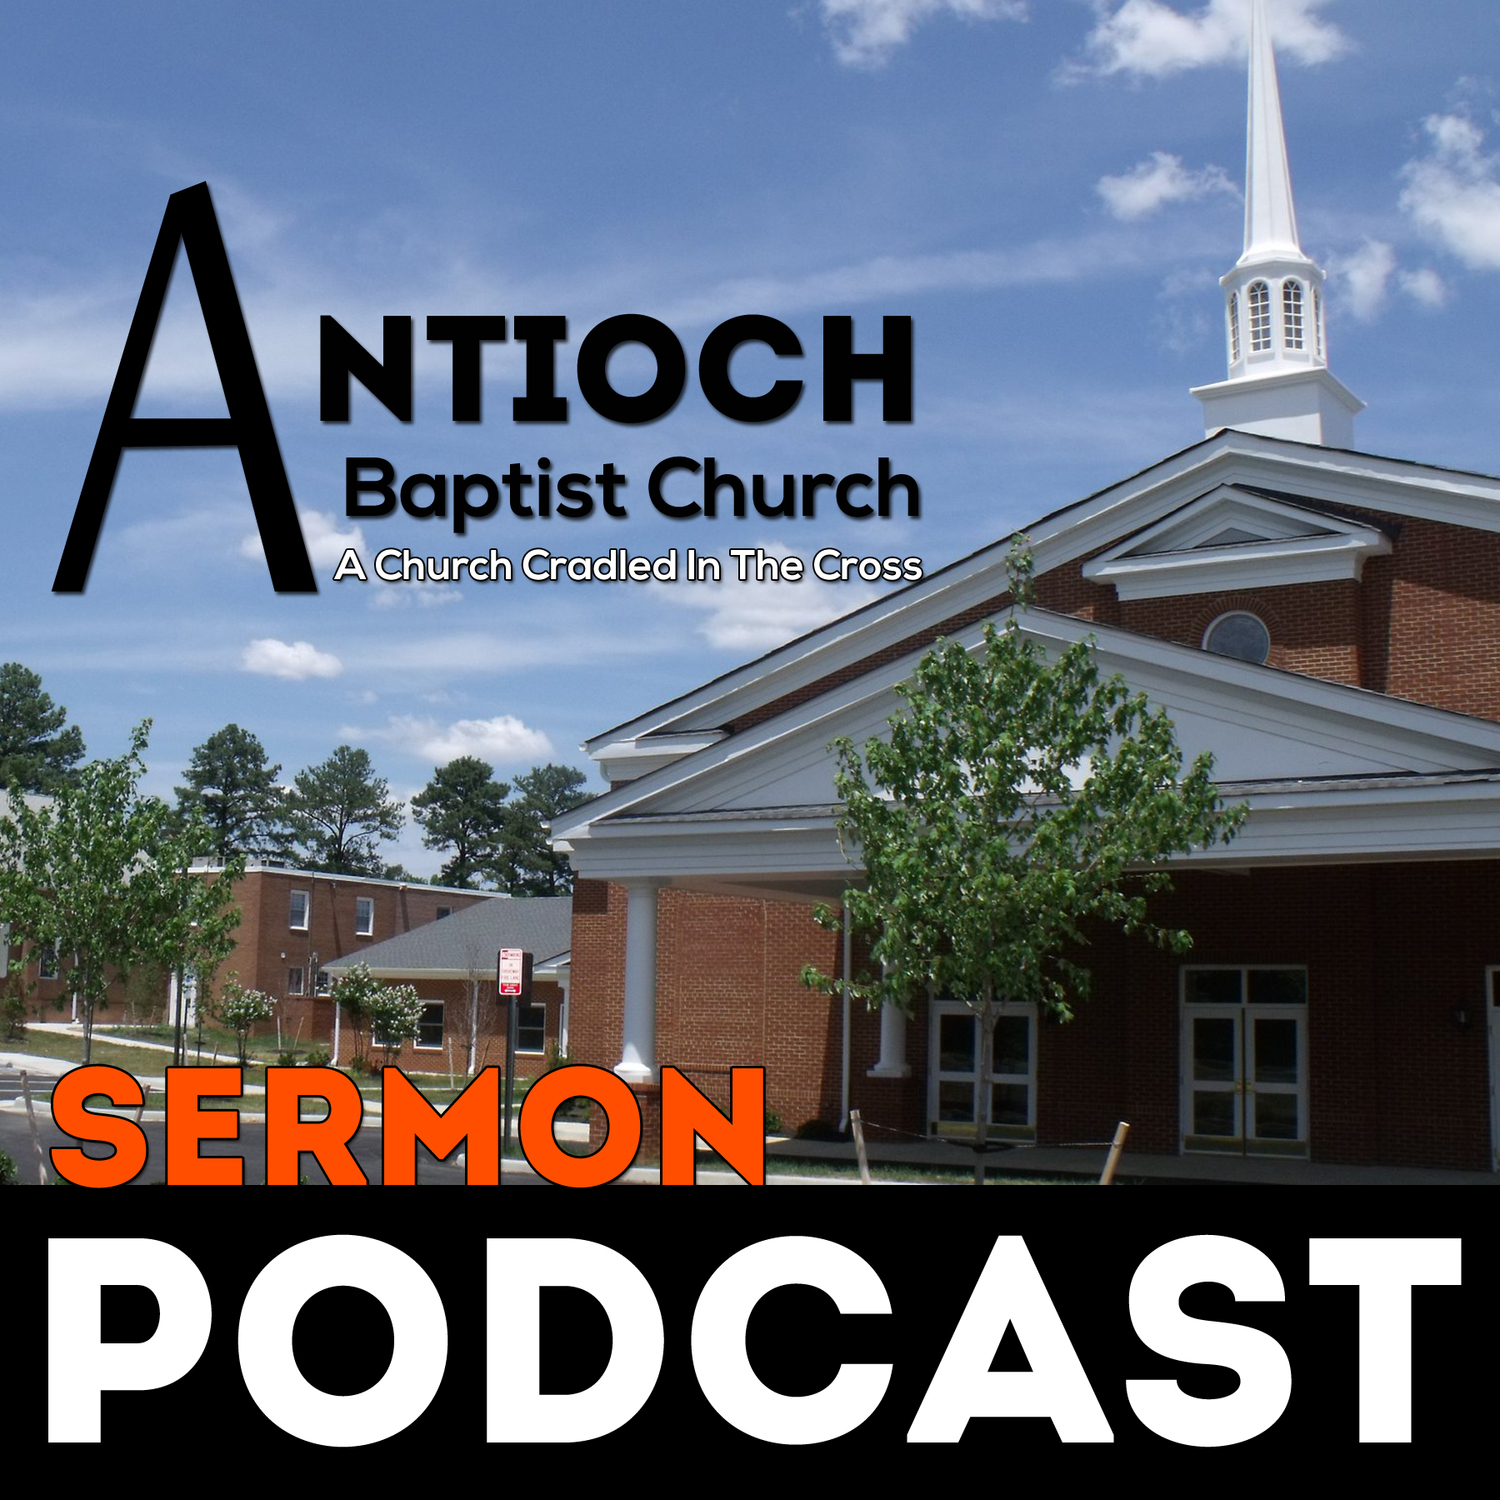 Antioch Podcast - Antioch Baptist Church